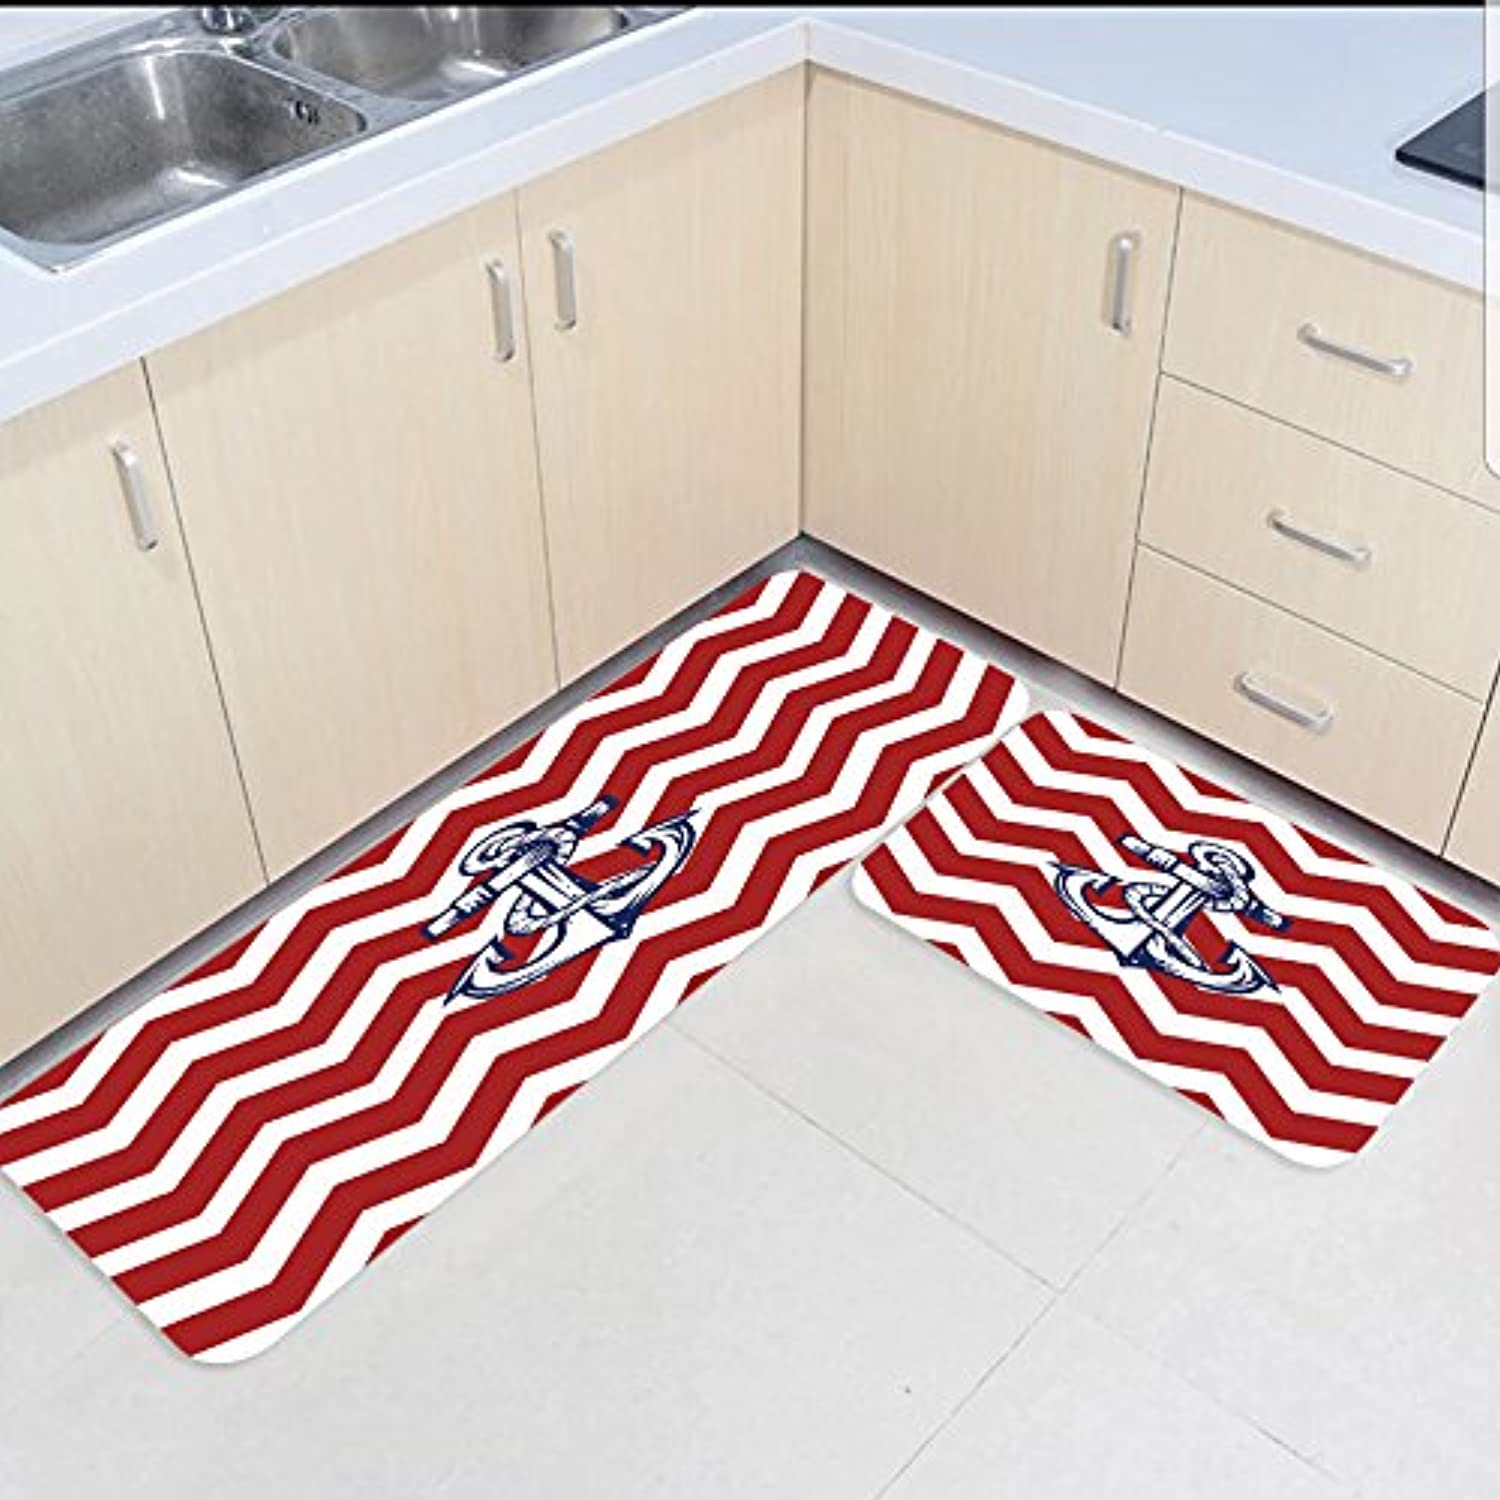 HomeCreator Non Slip 2pc Kitchen Area Rugs Corrugated Anchor Absorbent Antibacterial Indoor Door Mats Set for Kitchen Dining Living Rug Runner 23.6 x35.4  23.6 x70.9